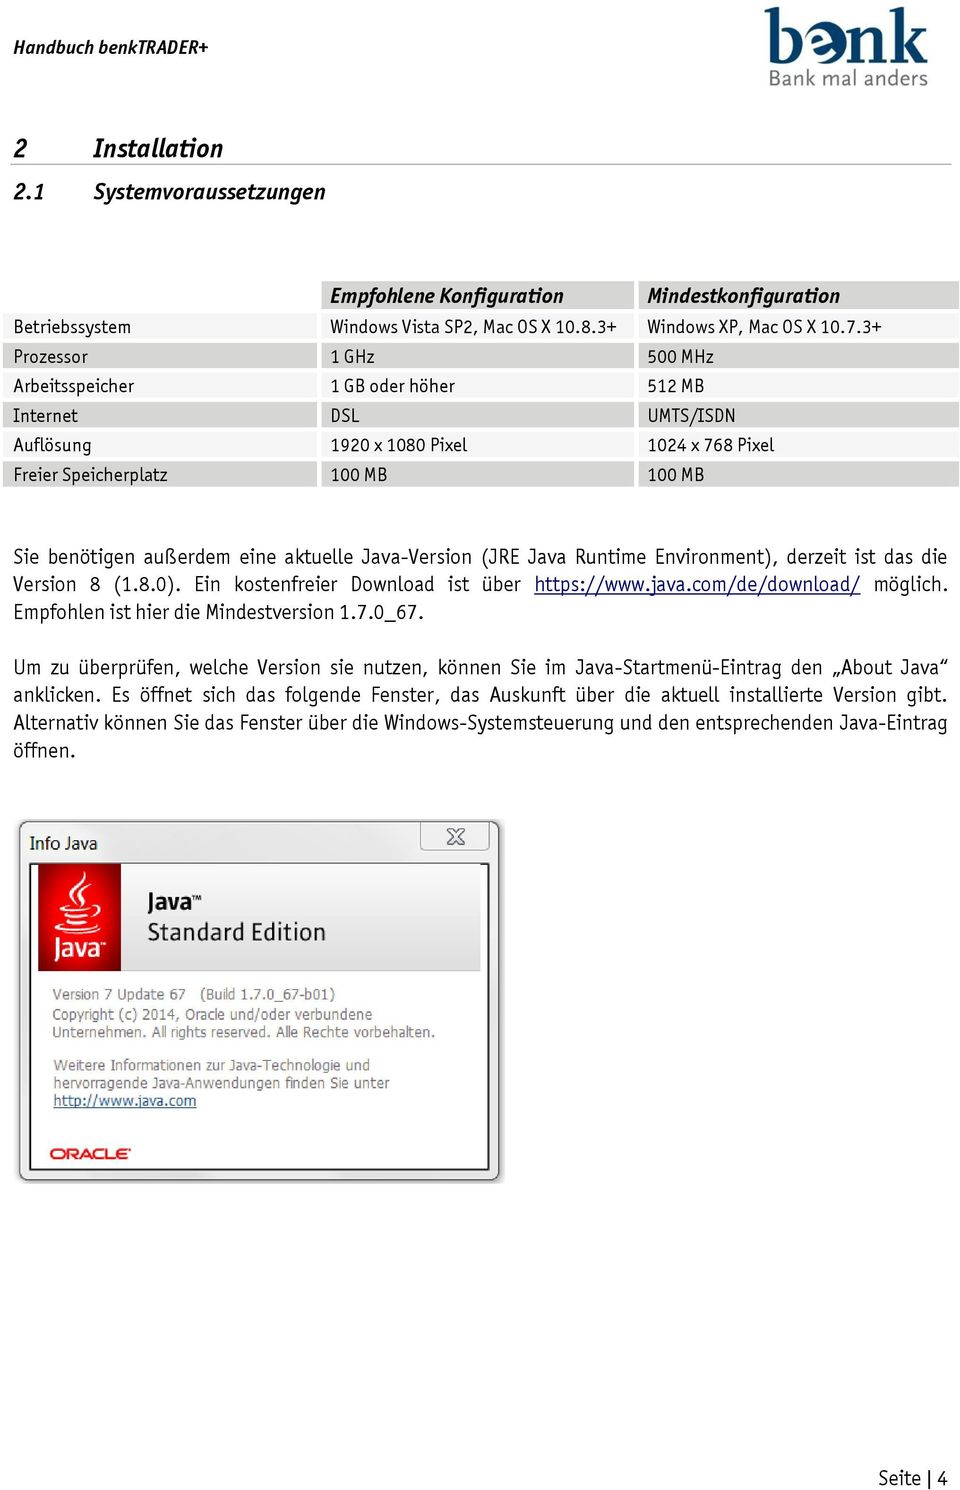 aktuelle Java-Version (JRE Java Runtime Environment), derzeit ist das die Version 8 (1.8.0). Ein kostenfreier Download ist über https://www.java.com/de/download/ möglich.